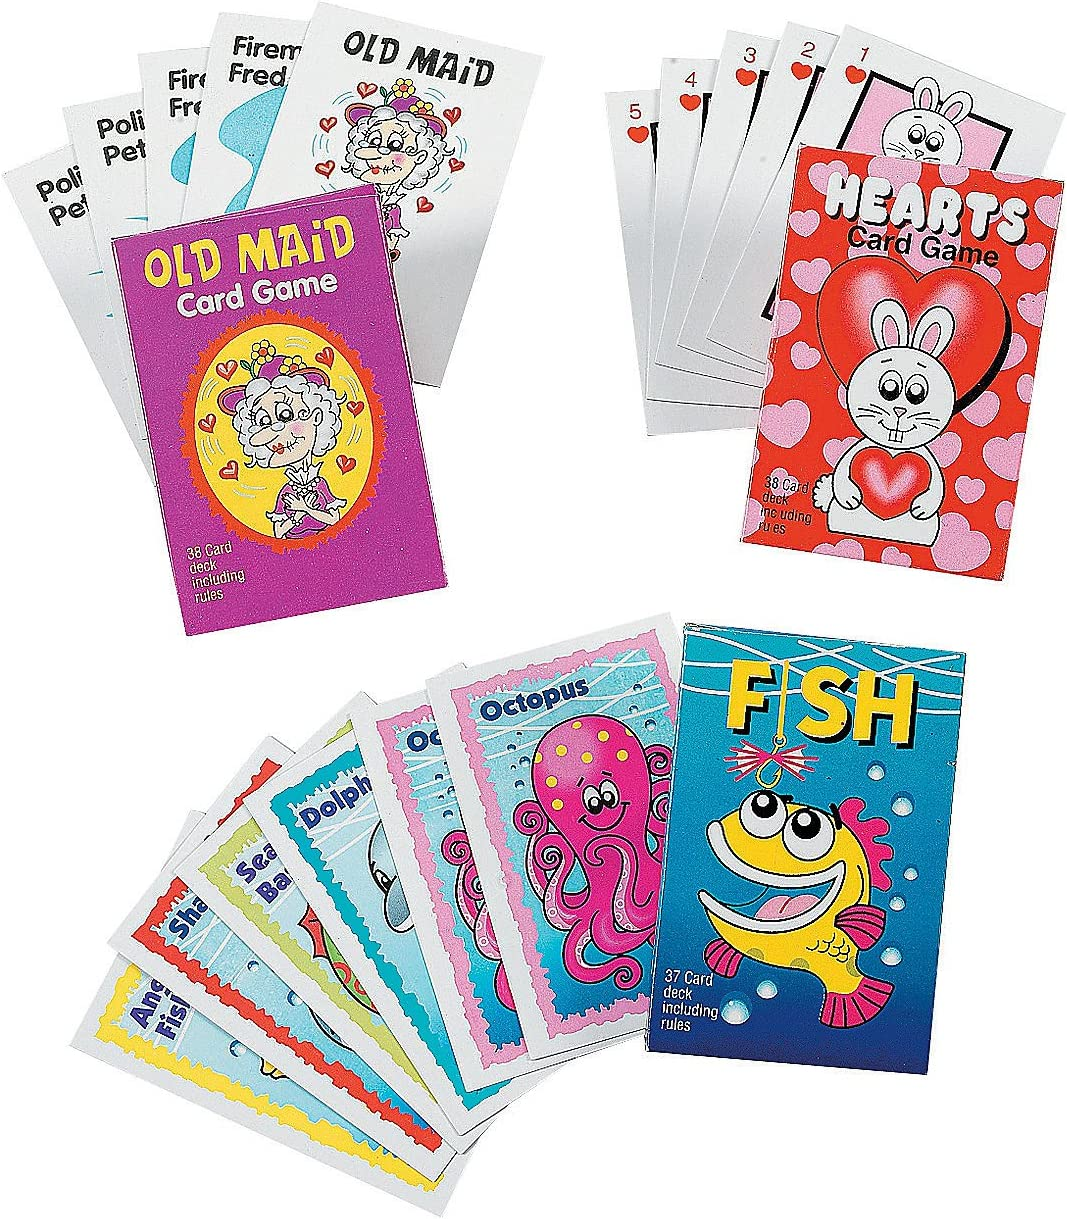 NEW rules Hearts Card Game 38 card deck